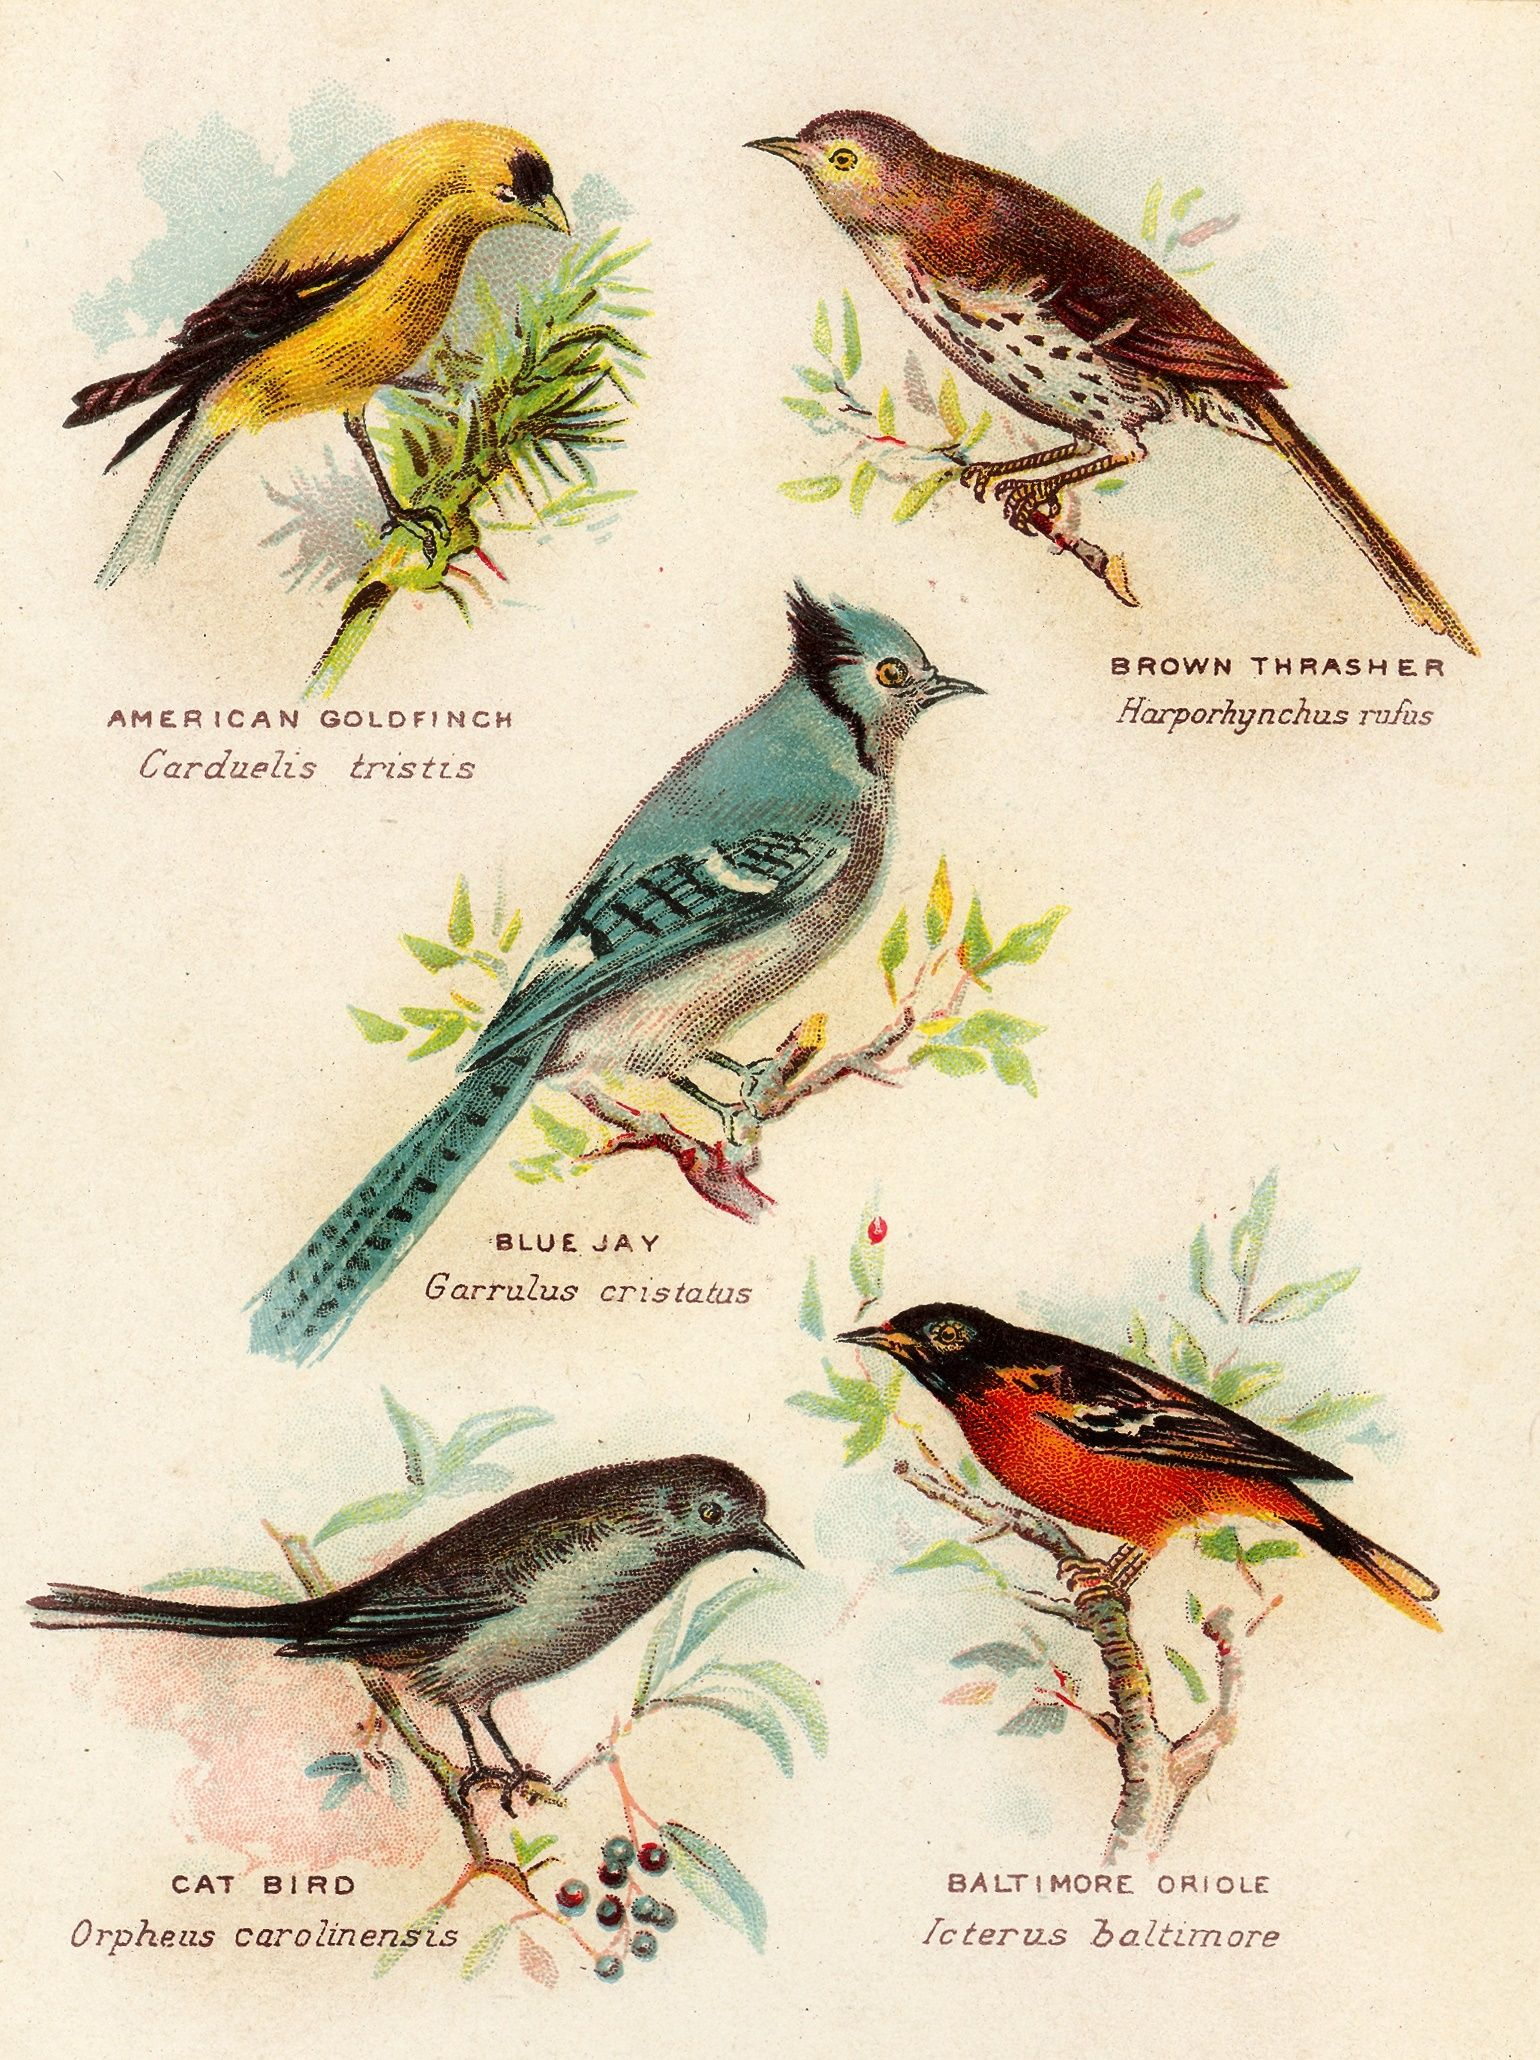 Birds Vintage Image American Goldfinch Brown Thrasher Blue Jay Baltimore Oriole Cat Bird